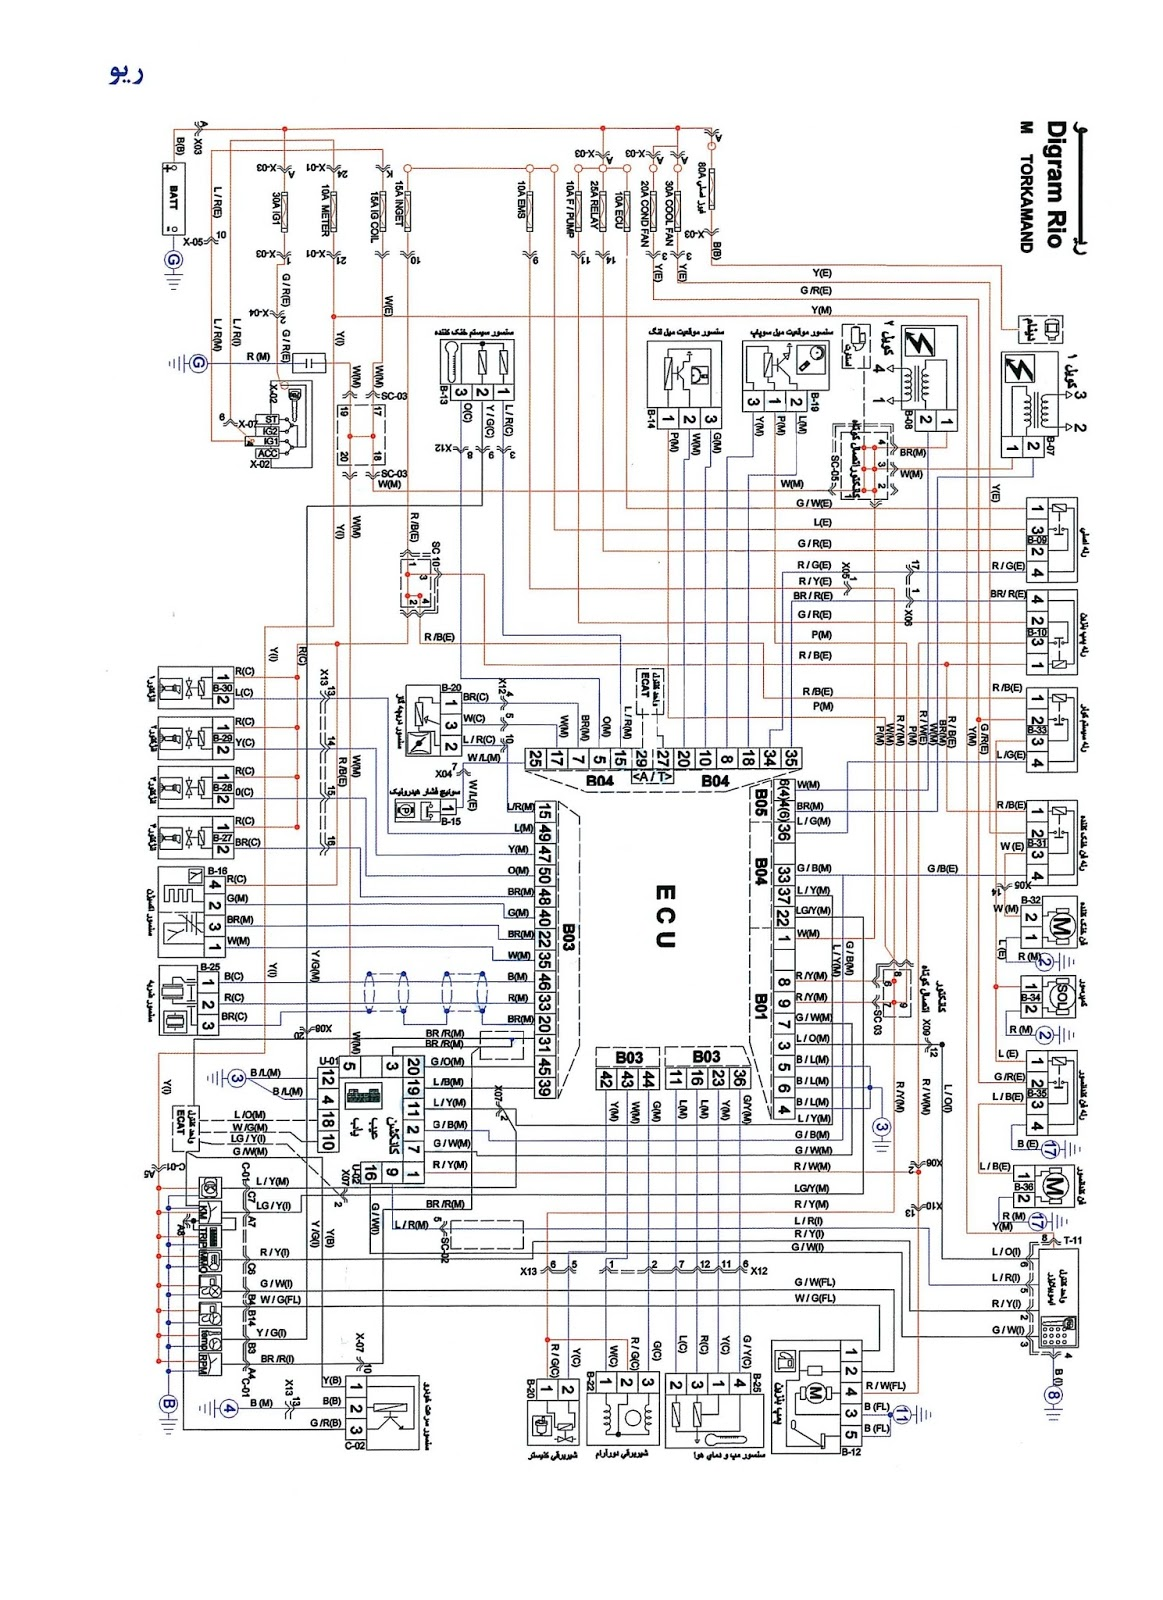 Auto Electrical Repairs Automotive Wiring Maps Of Kia Rio